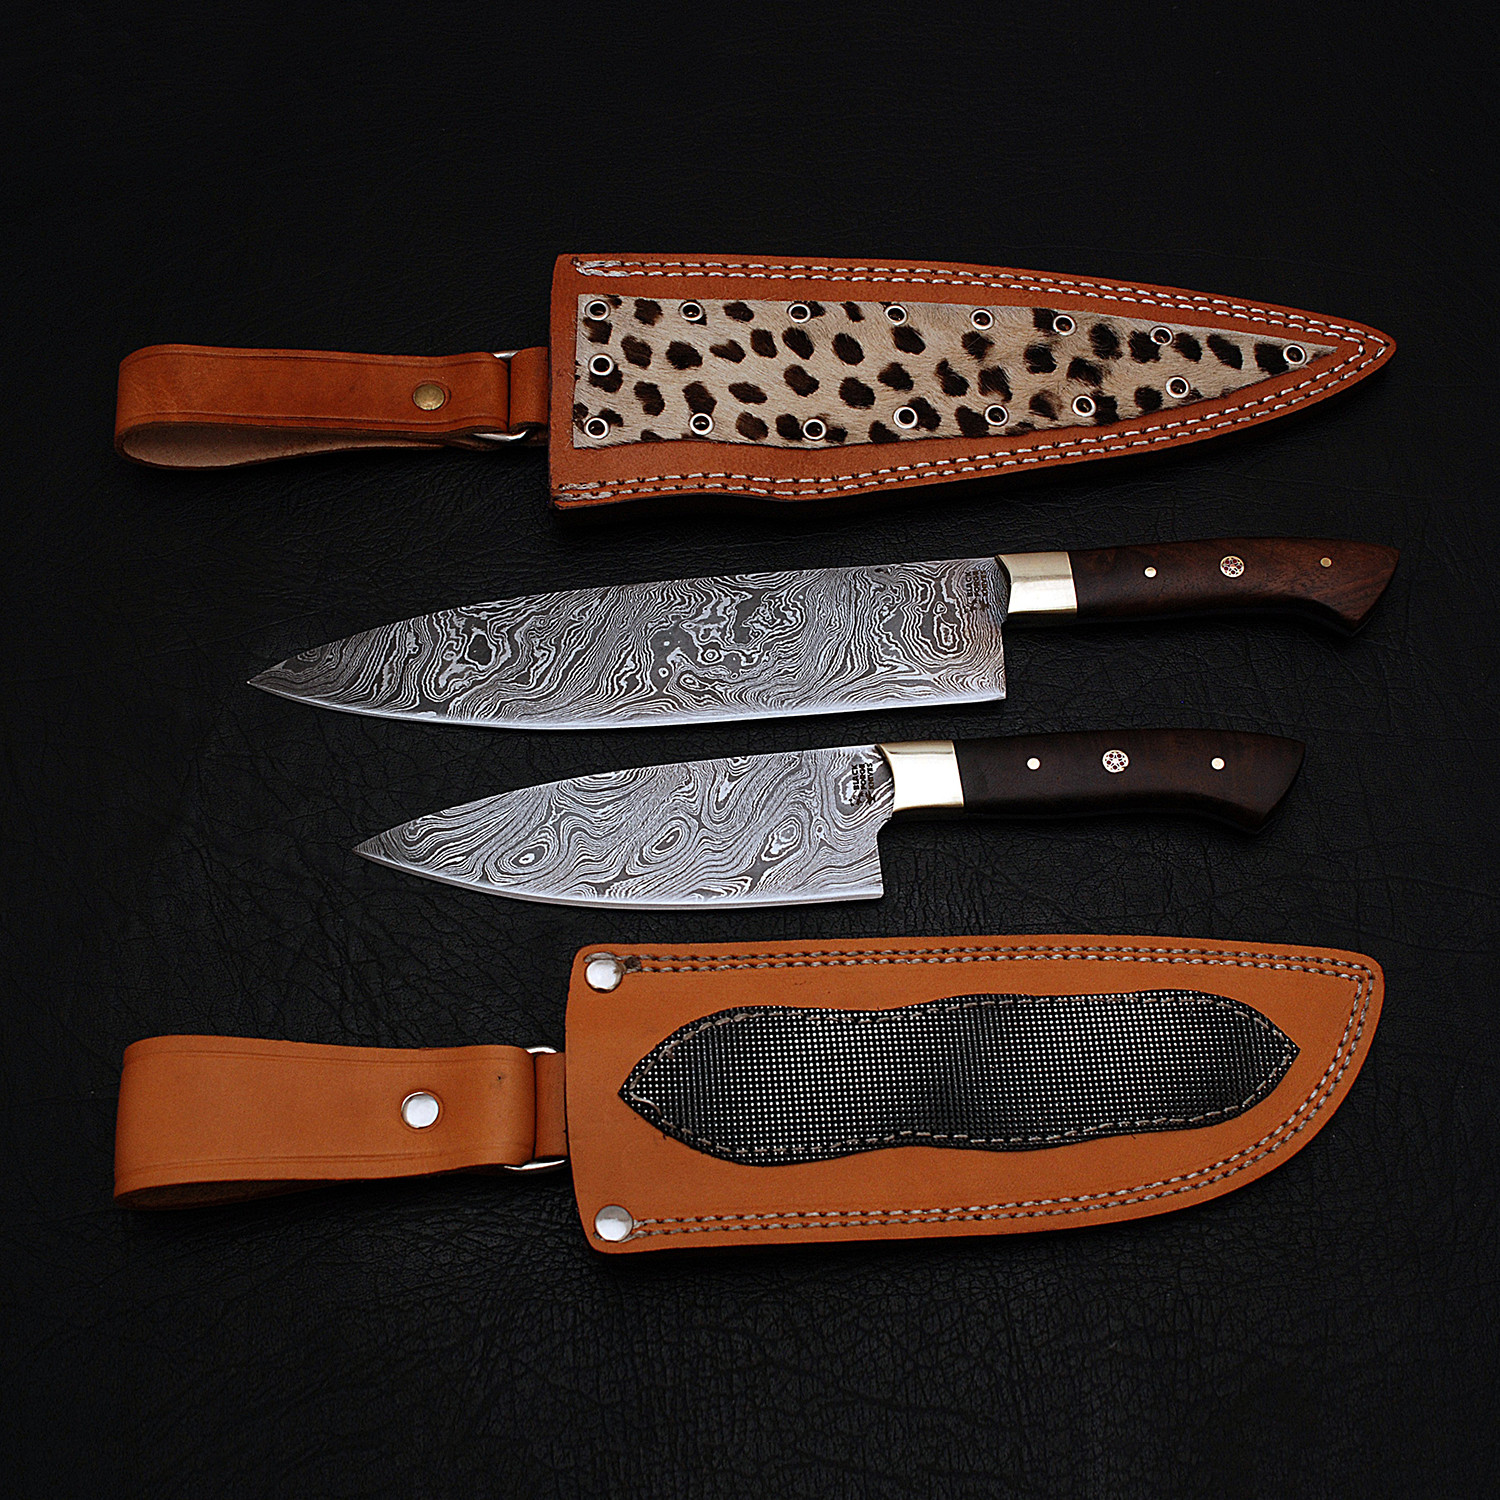 damascus chef knife set // 2 piece // 9181 - black forge